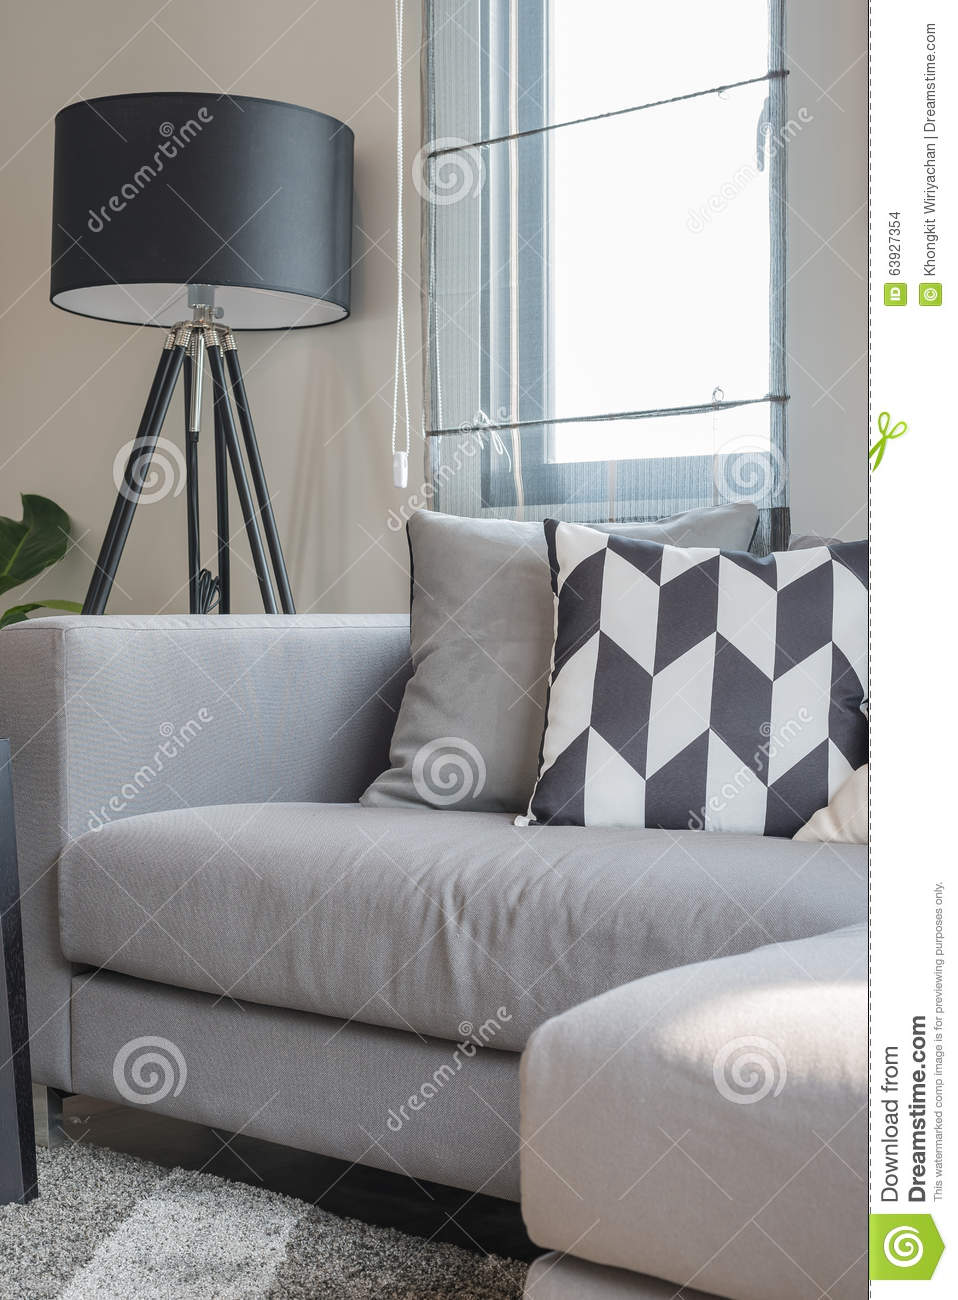 Black And White Pillows On Modern Grey Sofa Stock Photo Image 63927354